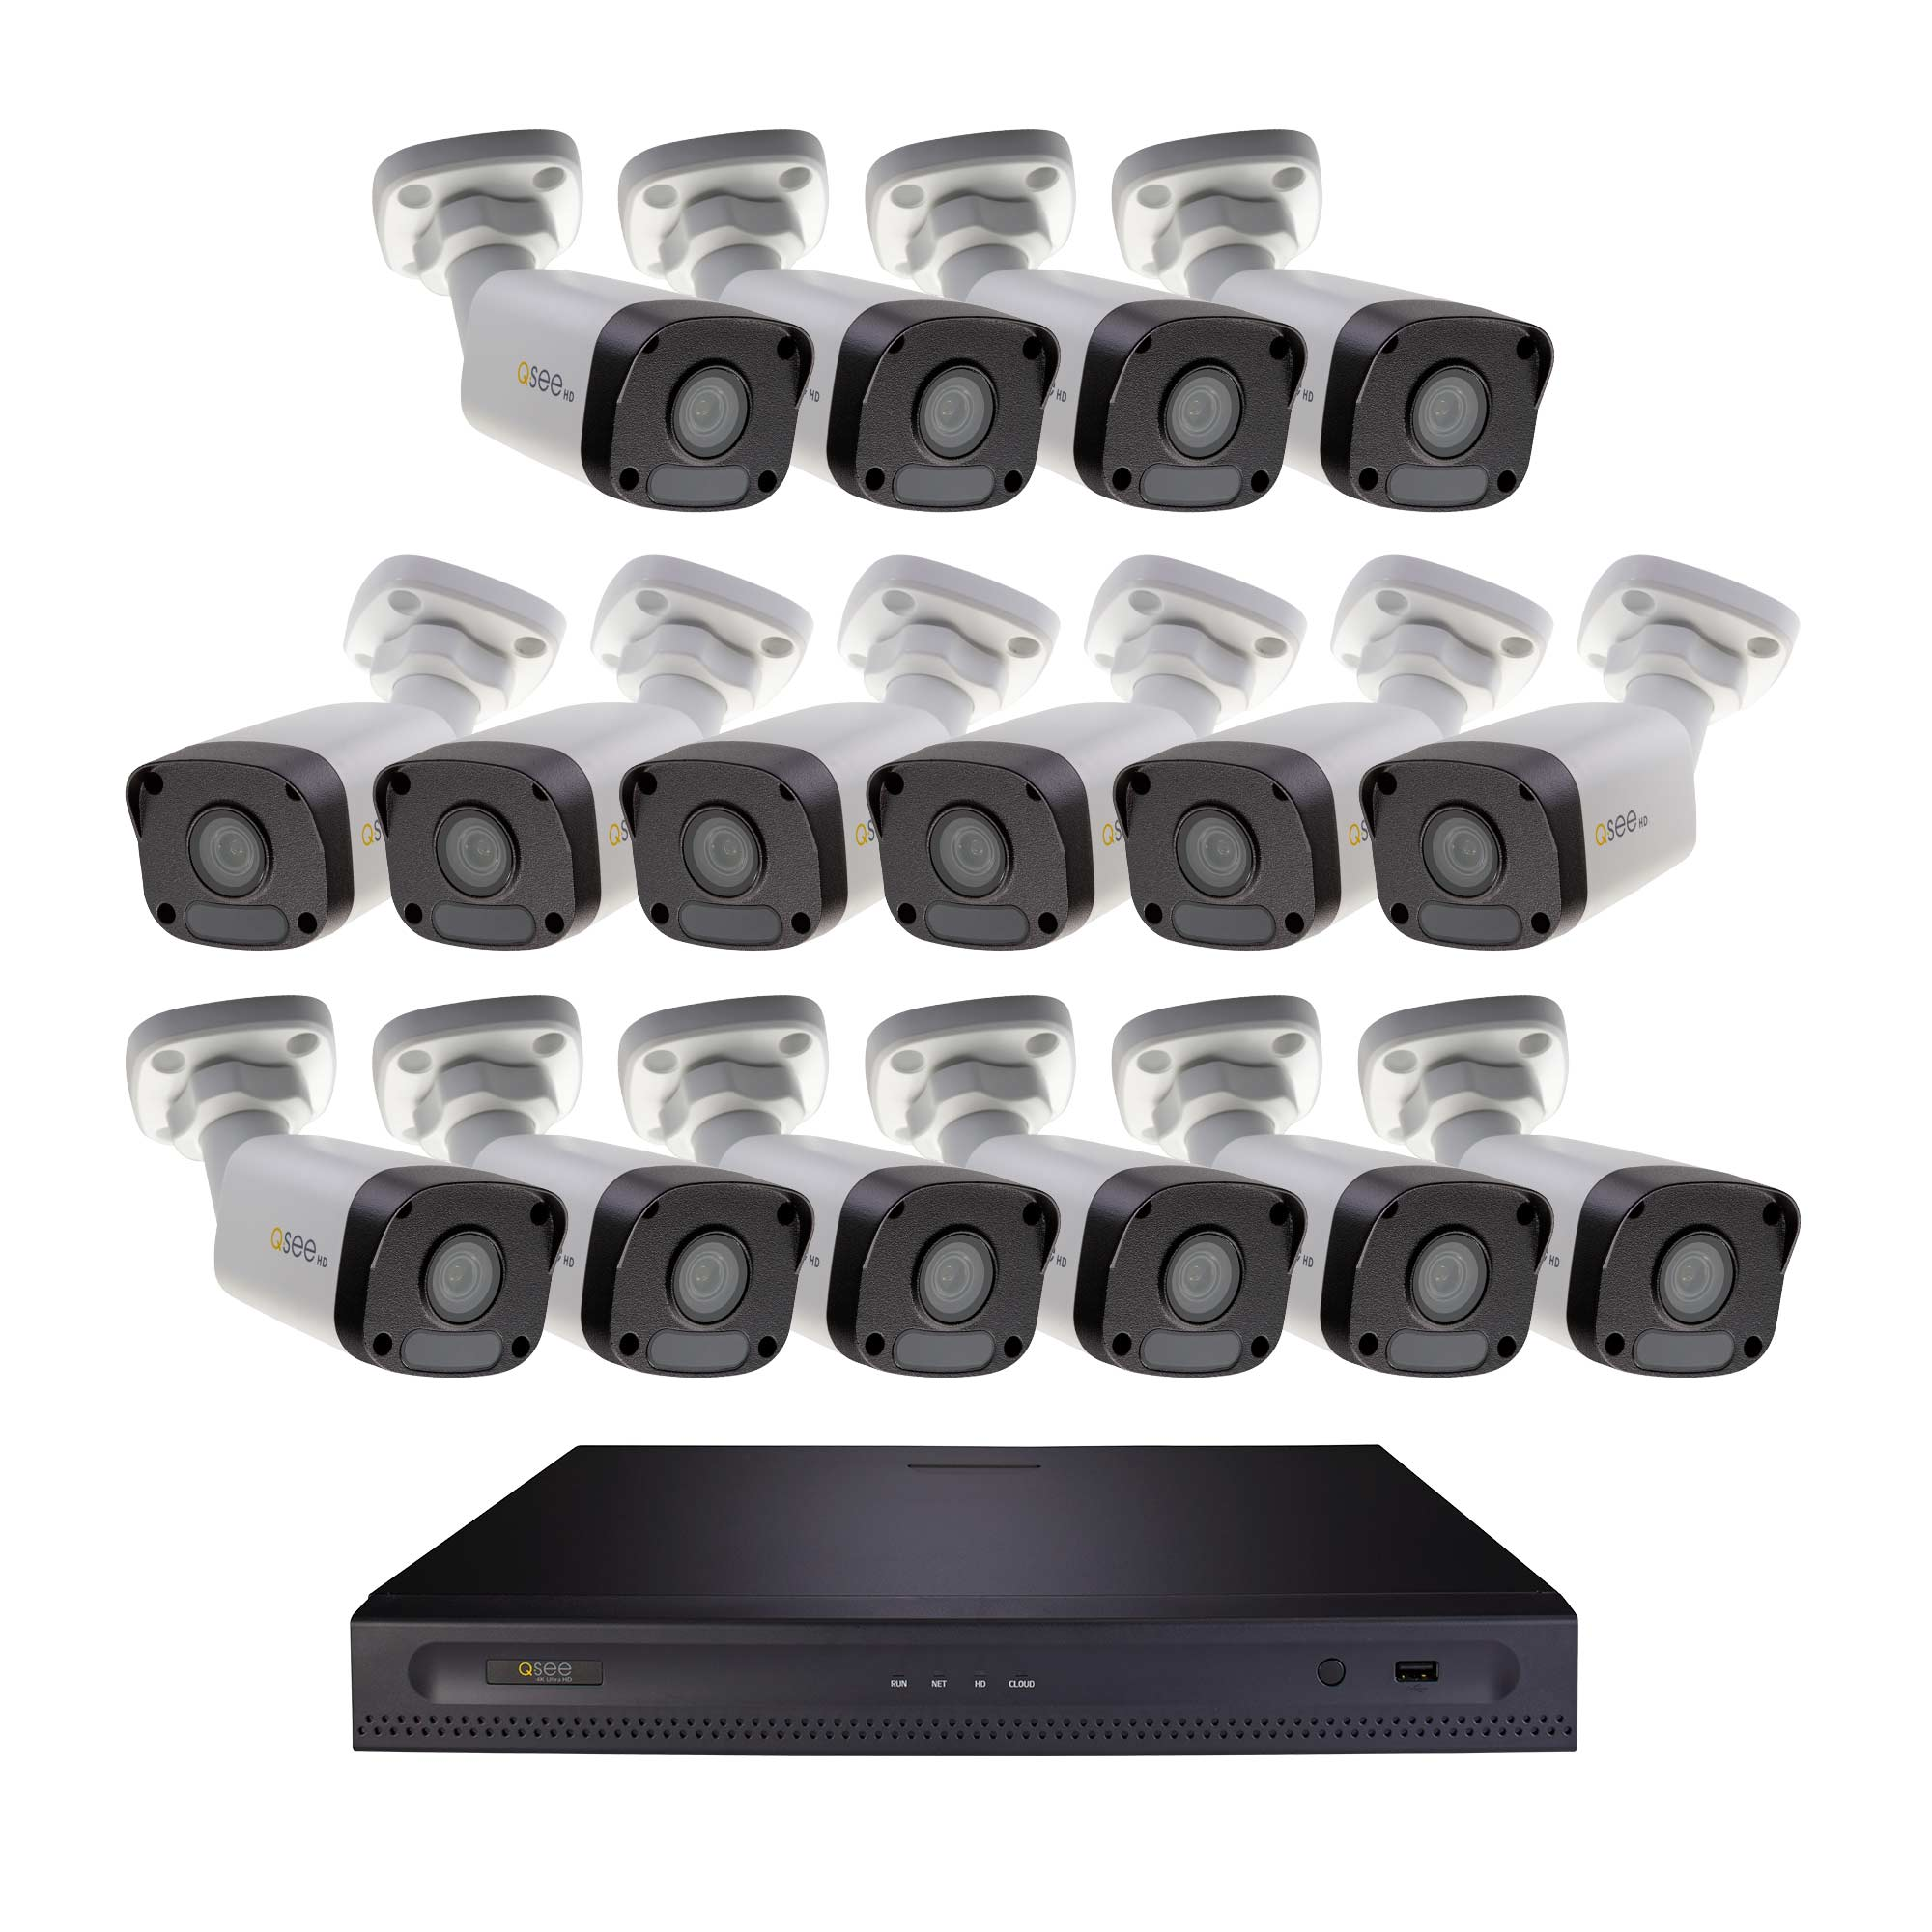 Q-See 16 Channel 5MP NVR with 2TB HDD and 16x 5MP IP Bullet Cameras (H162K2.16)